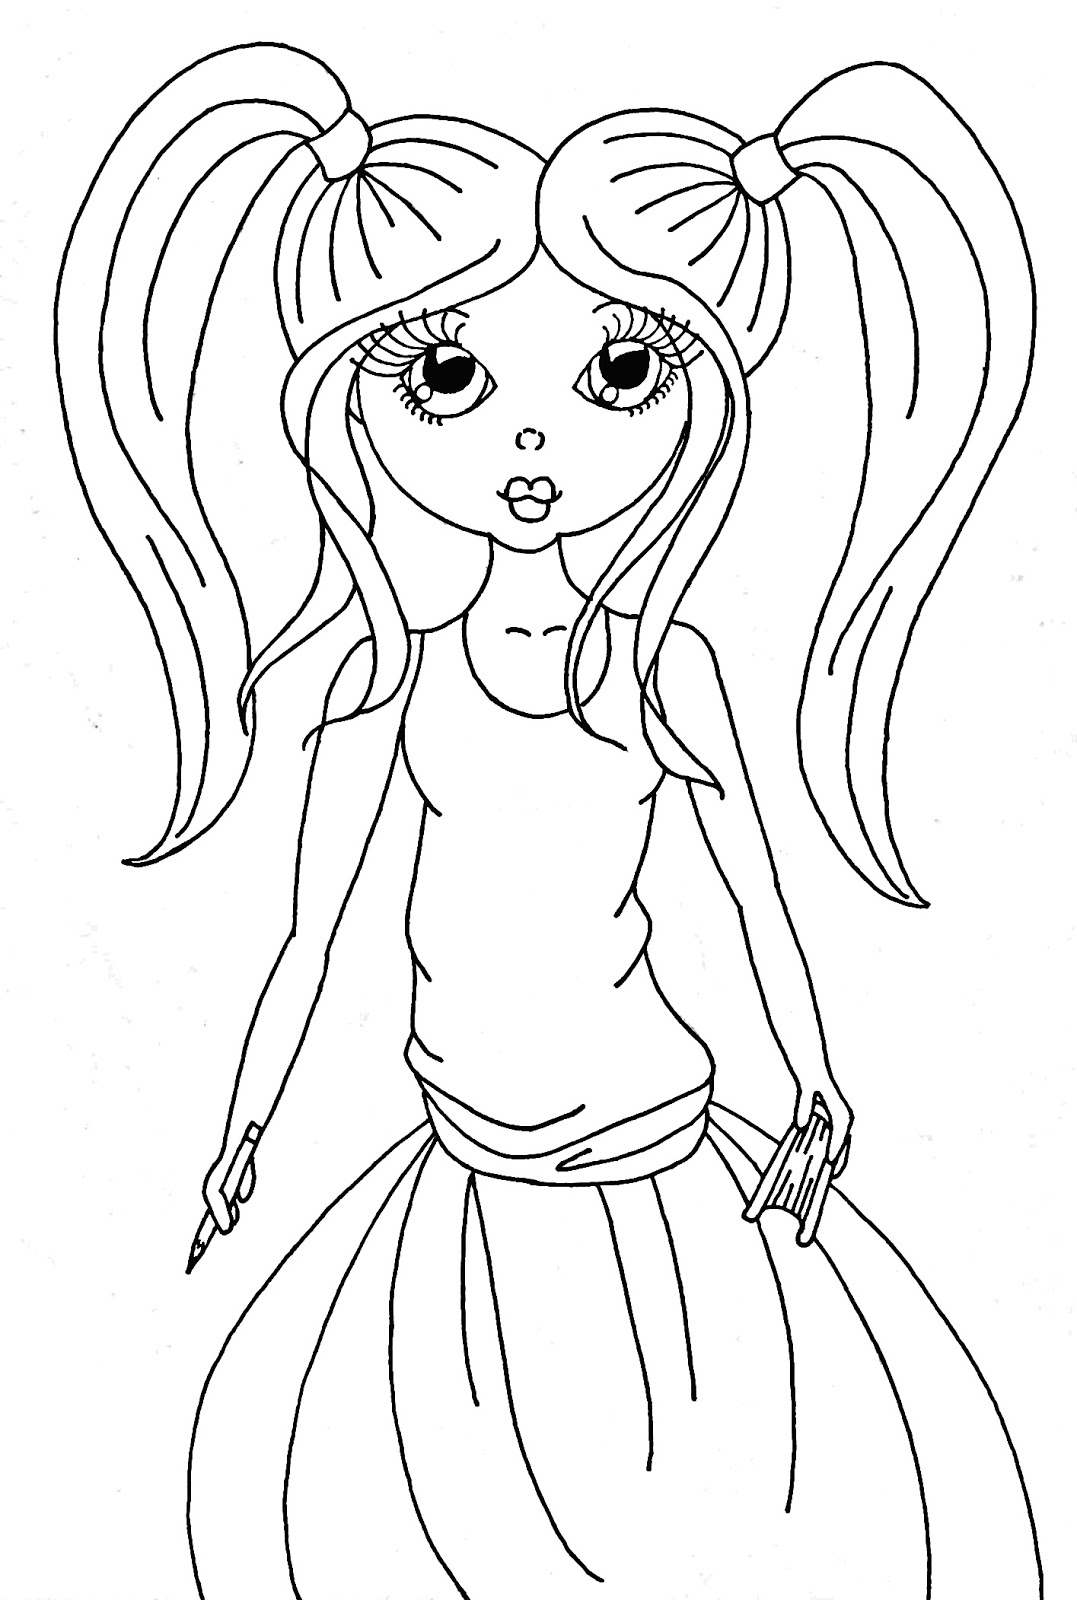 sec coloring pages - photo#18